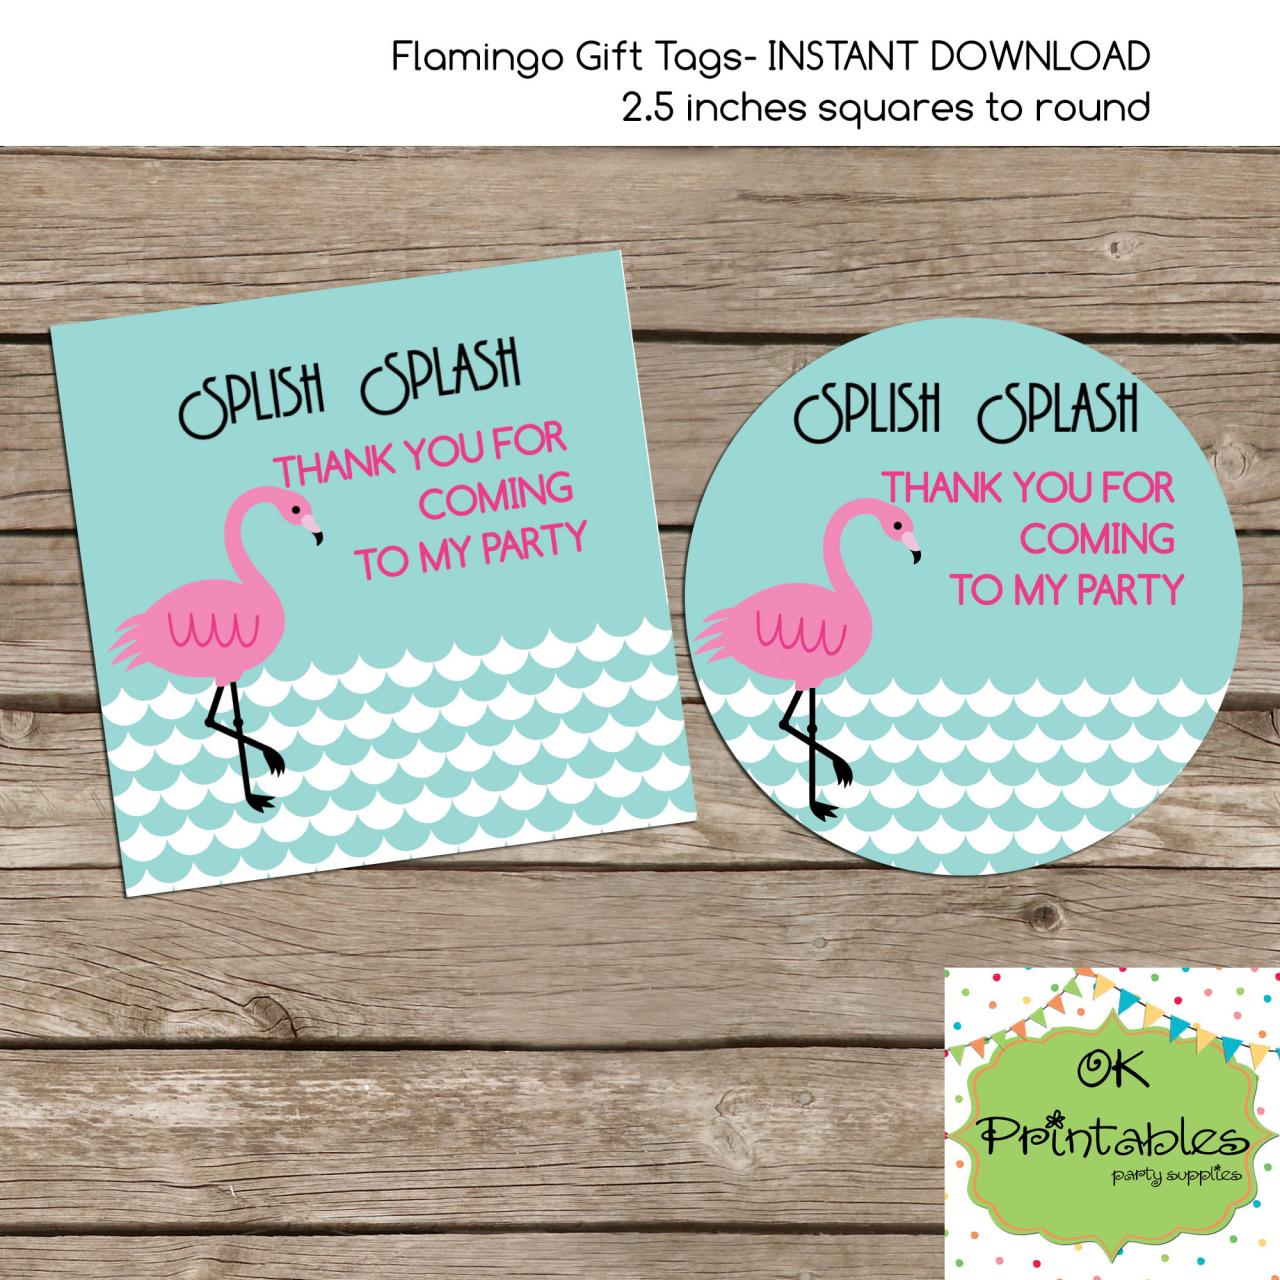 Flamingo favor tag - Instant Download 2.5 inches tag, Printable tag - Flamingo tag